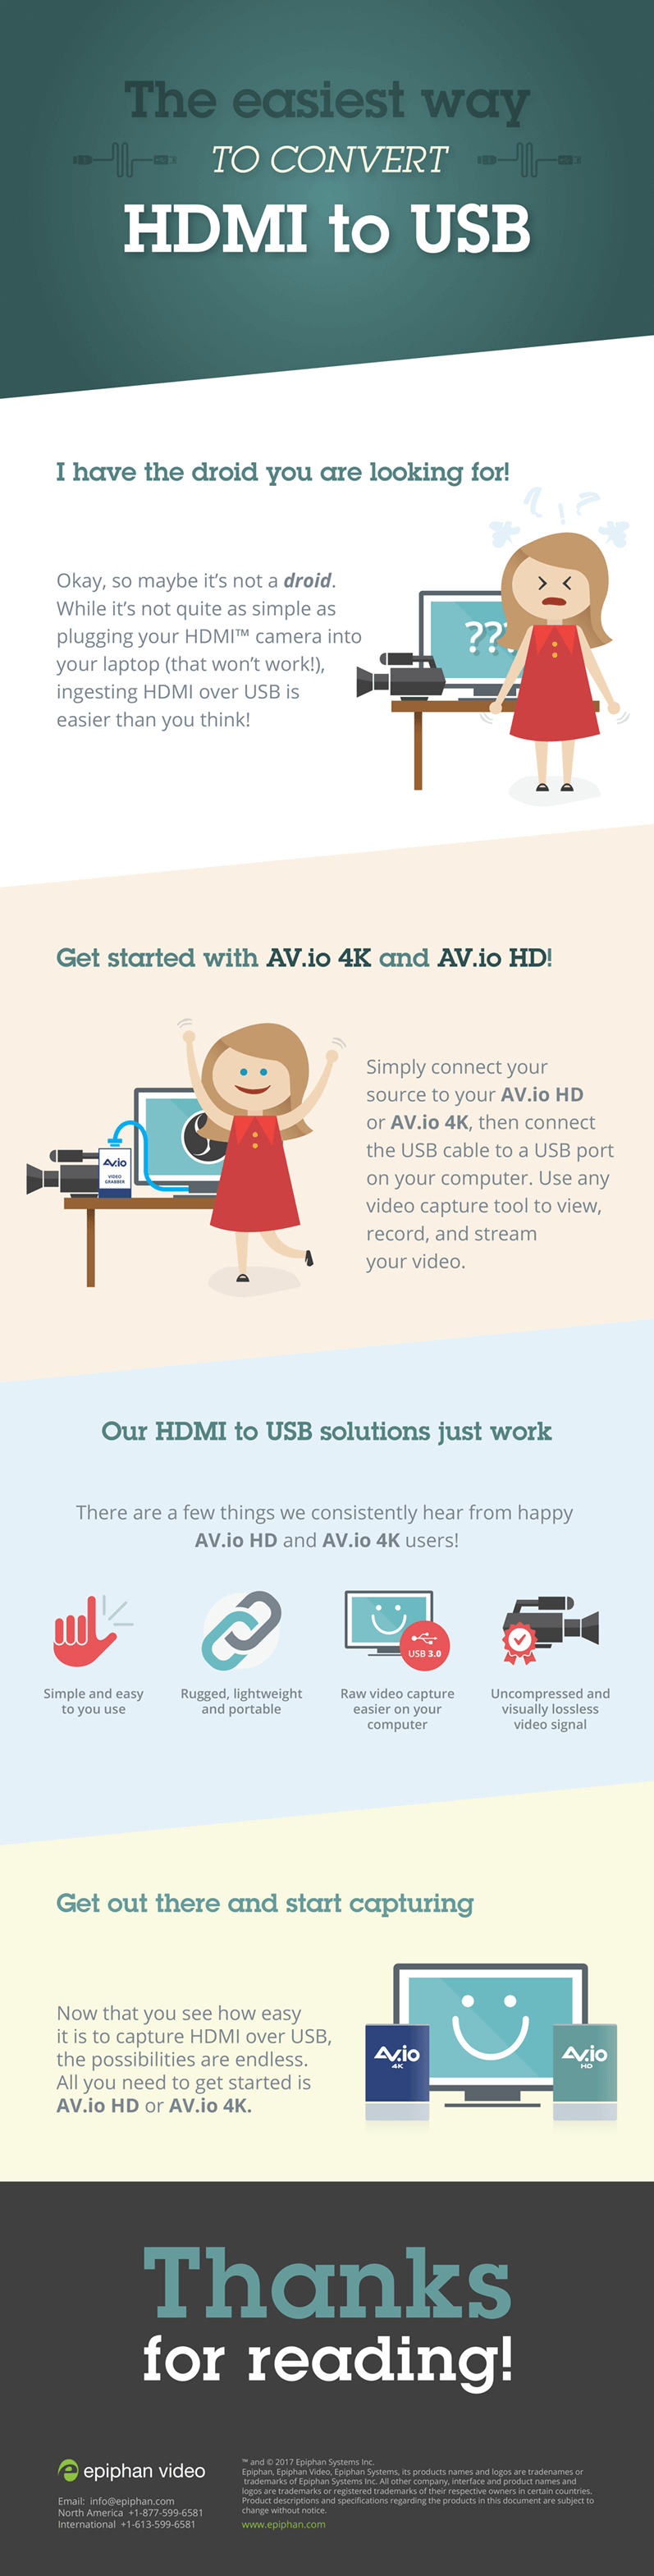 Infographic The easiest way to convert HDMI to USB